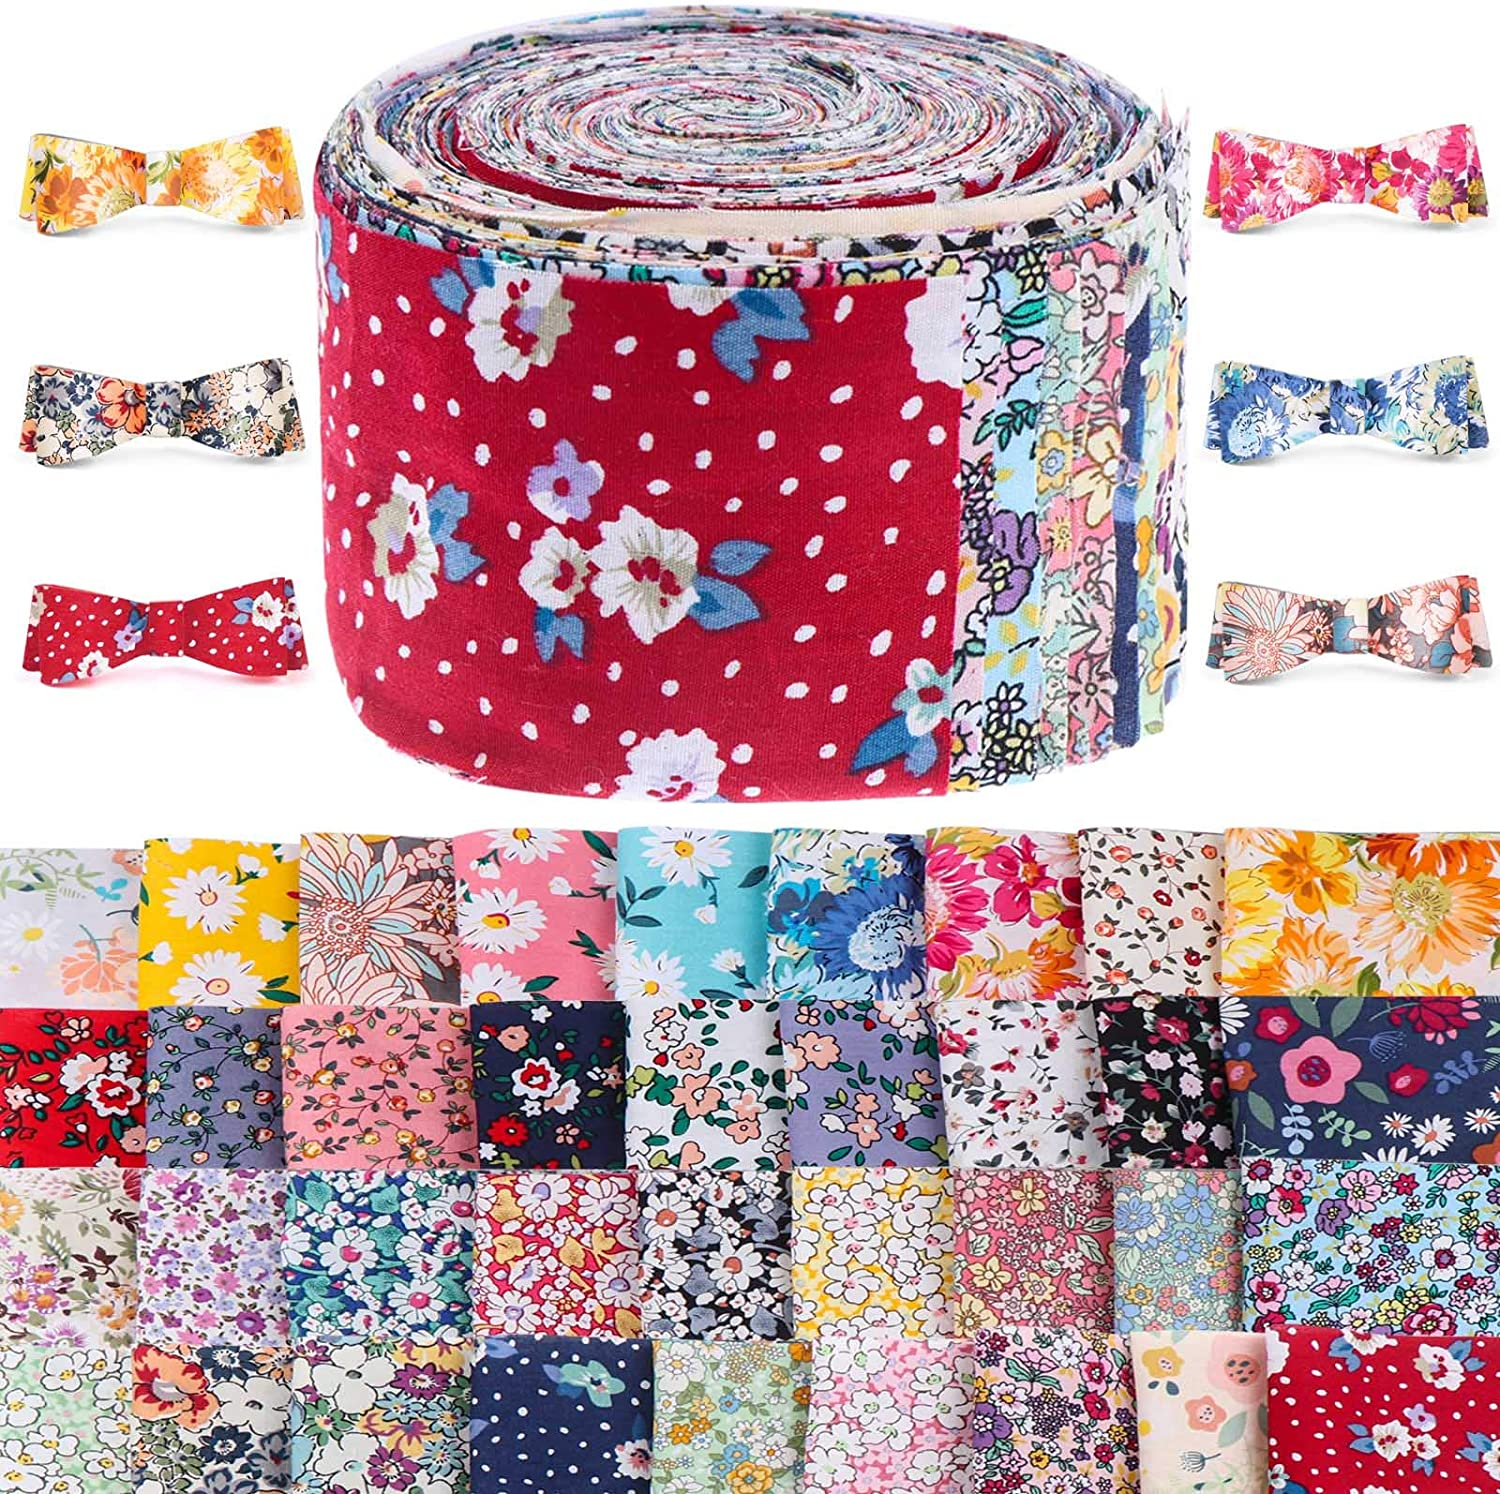 36 Pieces Jelly Rolls Fabric Roll Fabric Strips, Various Patterns Patchwork Craft Fabric Strips, Fabric Quilting Strips, Quilting Fabric Bundle